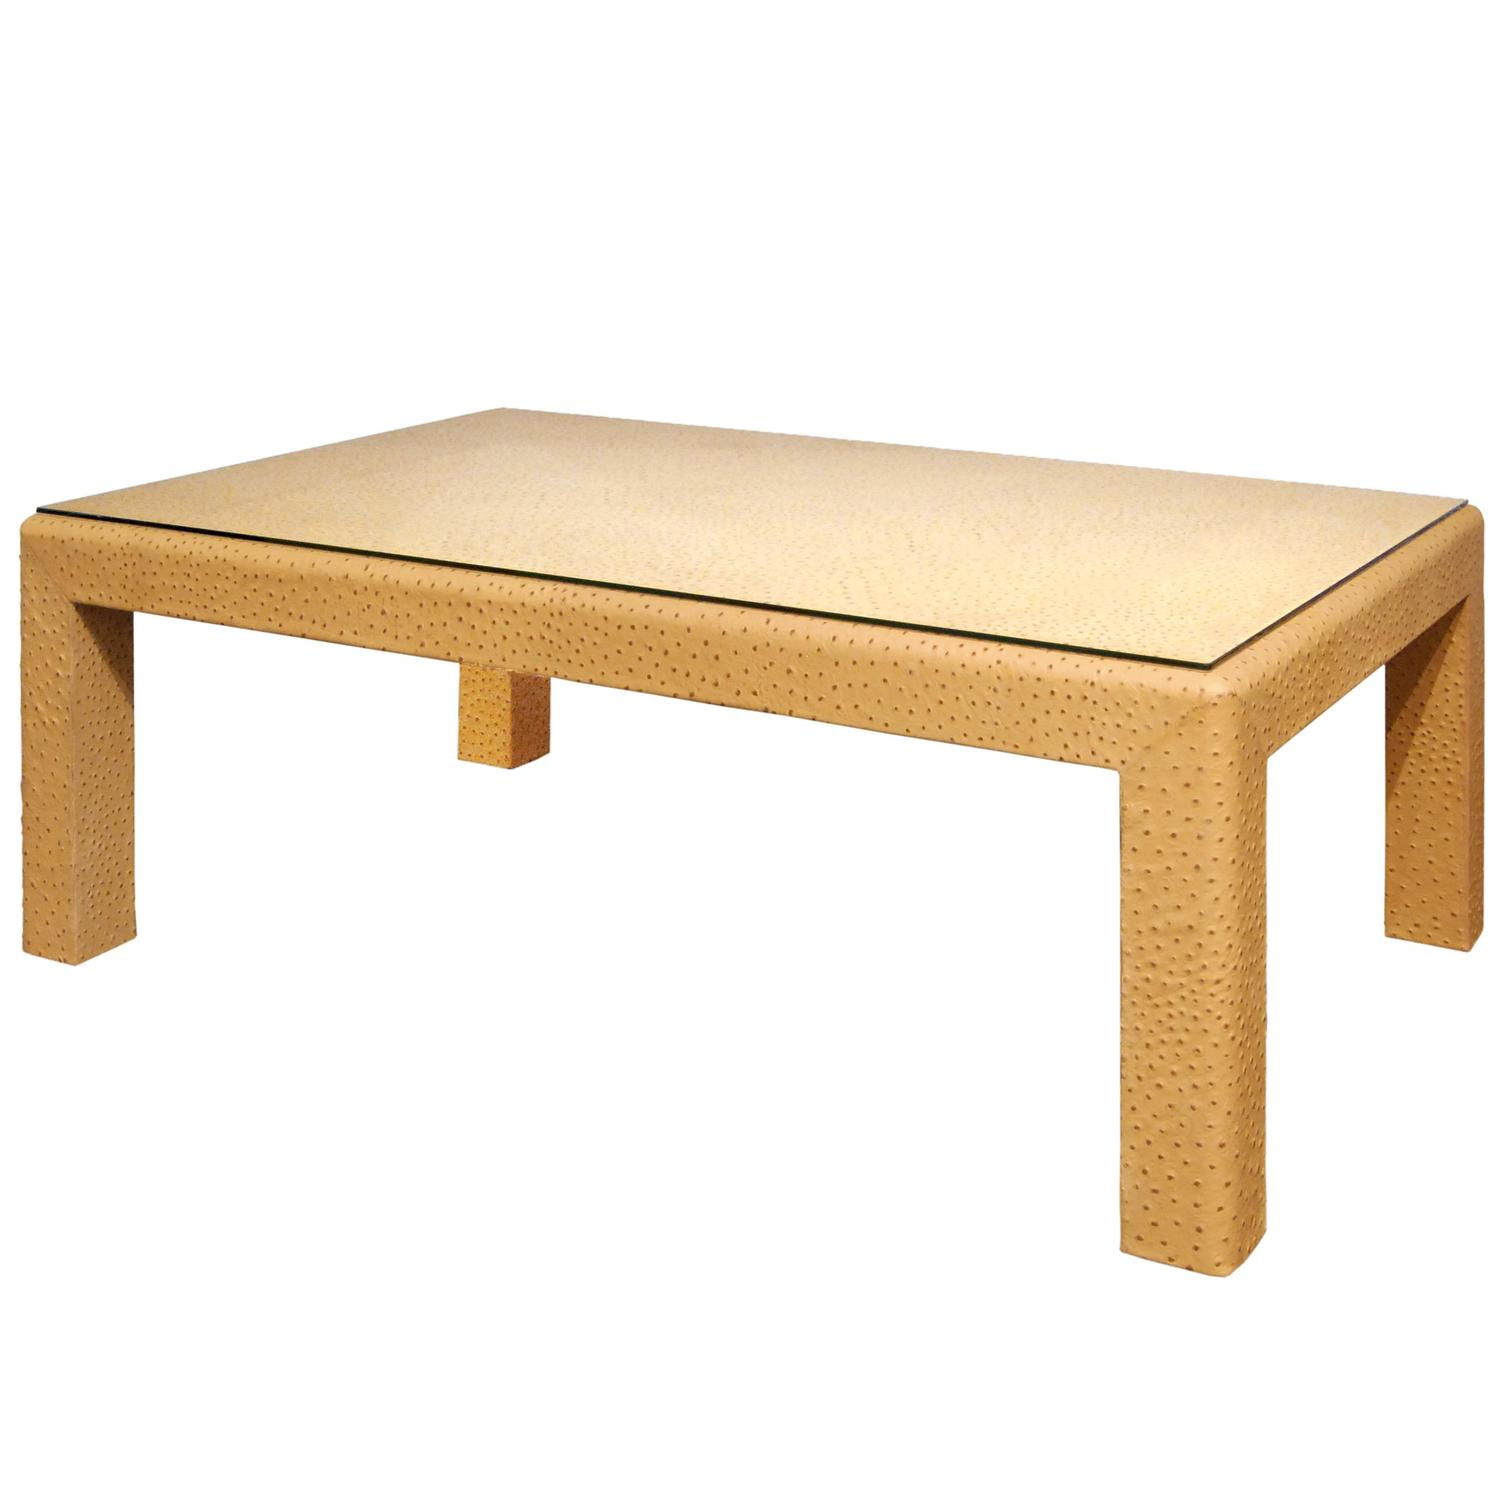 Beau Karl Springer Ostrich Skin Coffee Table, 1980s For Sale At 1stdibs